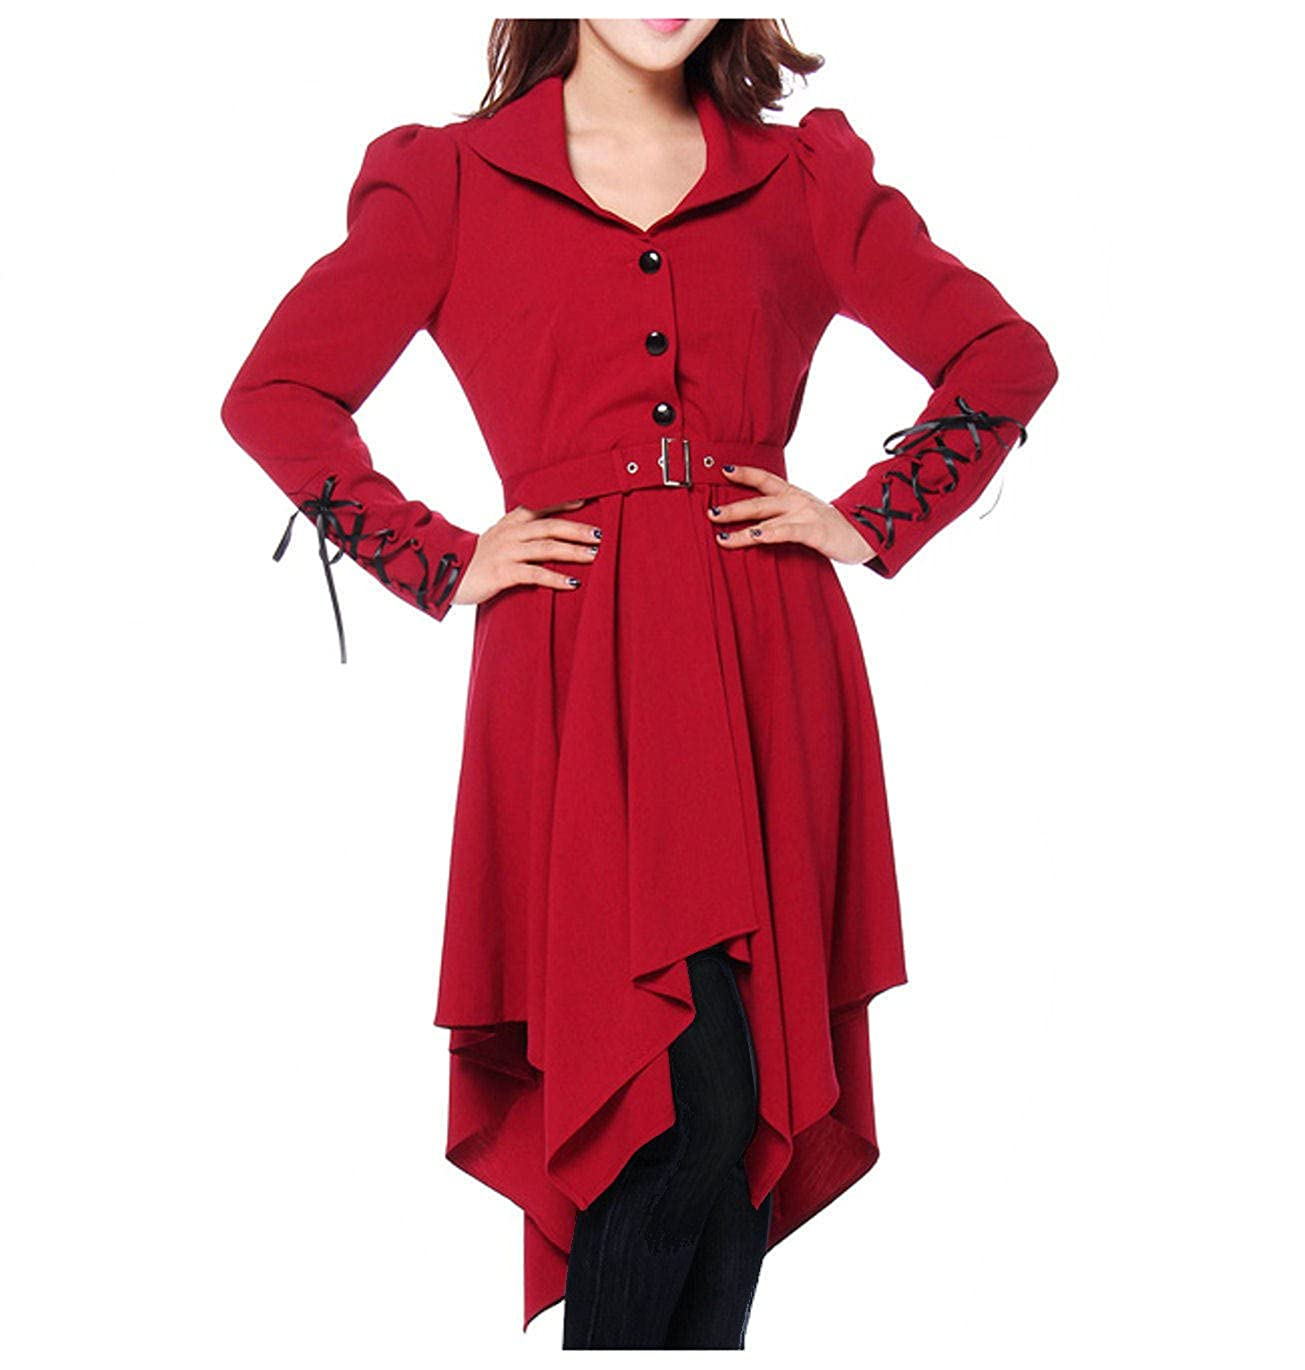 Pirate Inspired Long Red Fitted Asymmetric Belted Coat - DeluxeAdultCostumes.com